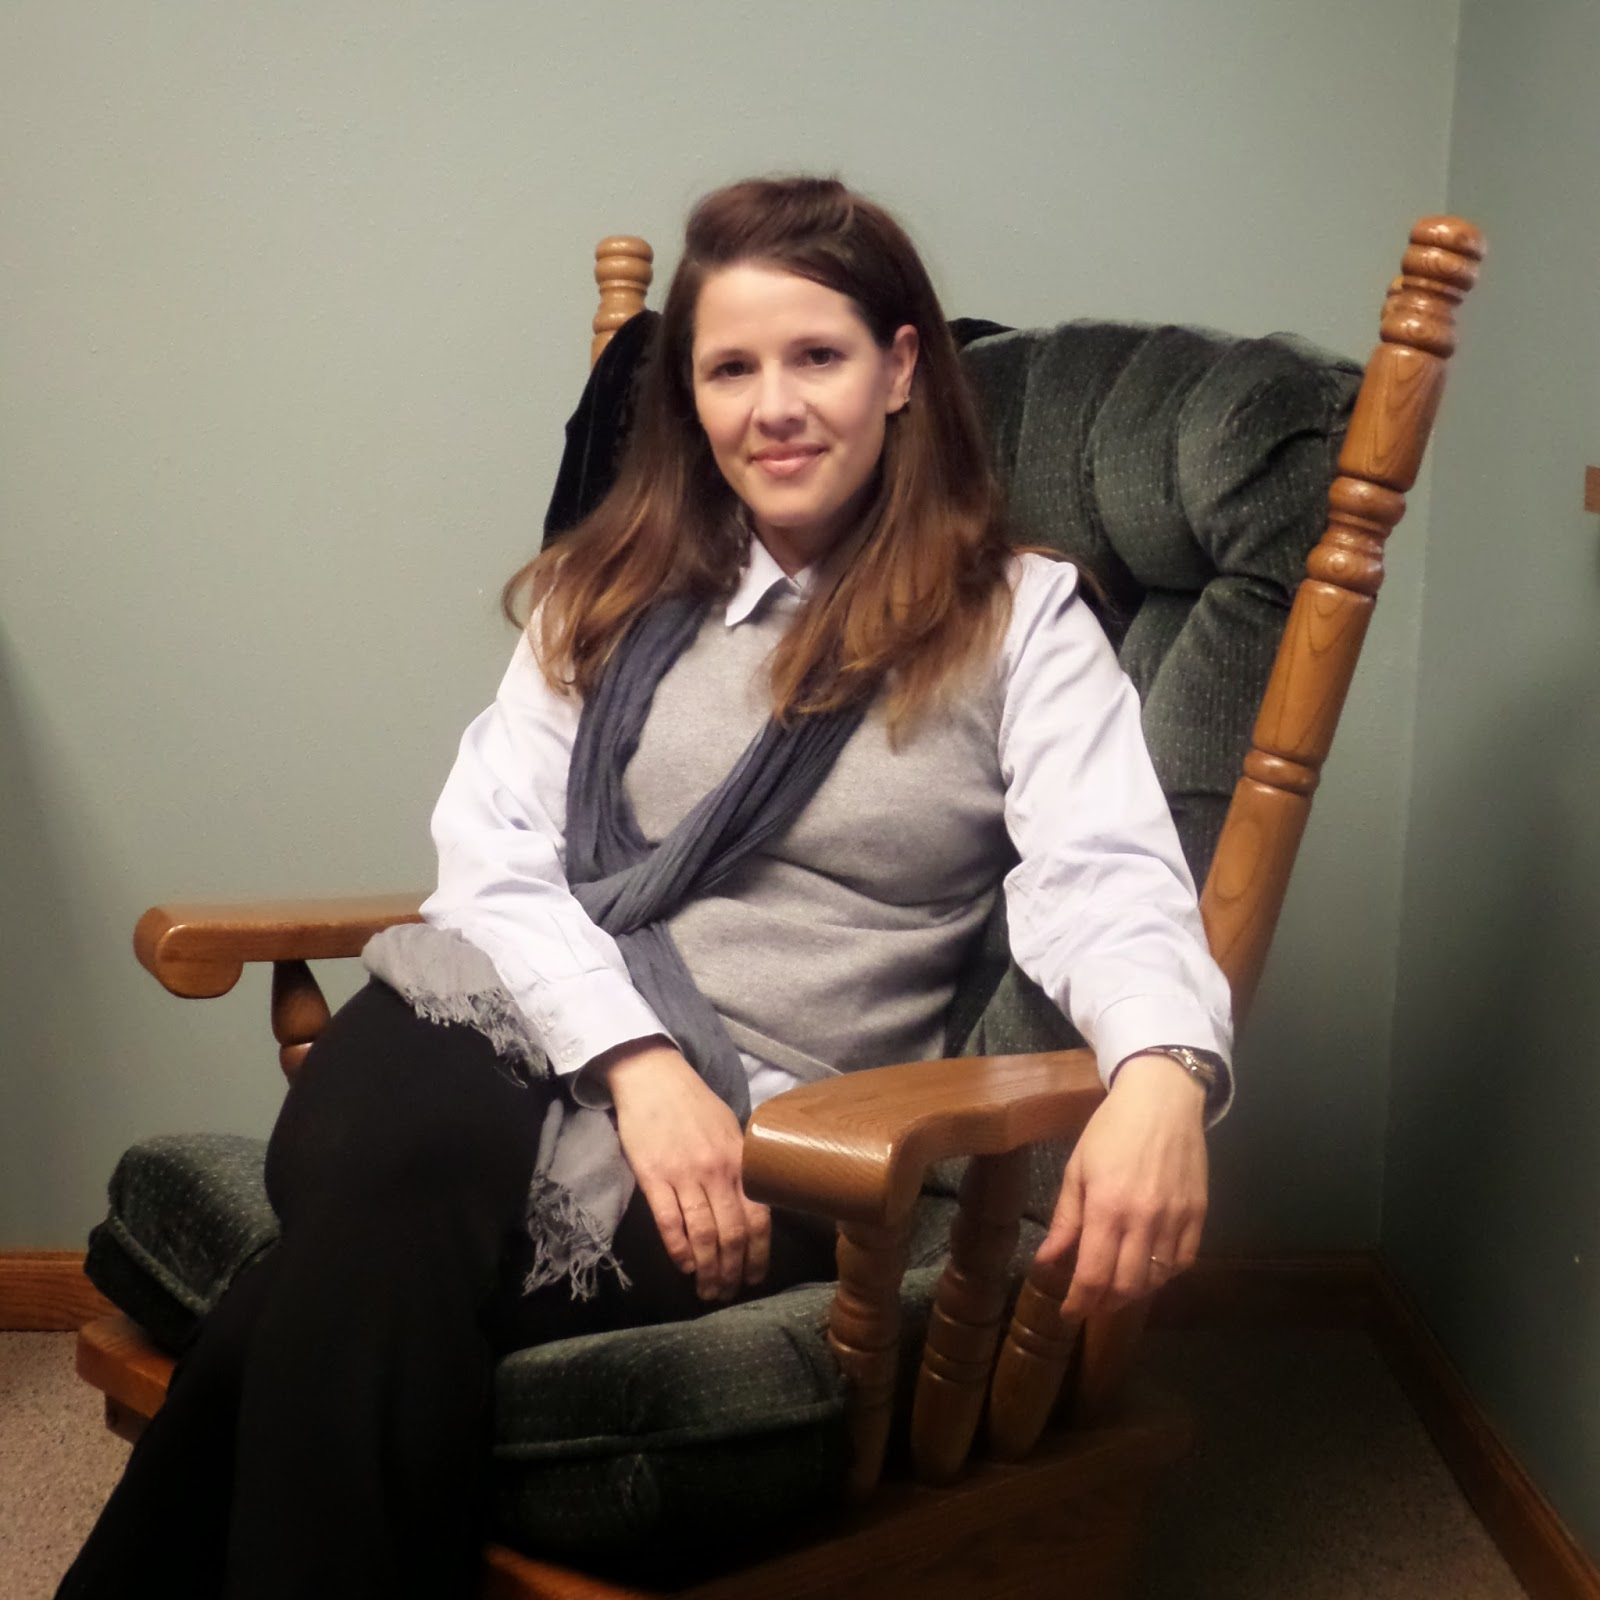 Northern Plains News: AUDIO: Dr. Annette Bosworth On